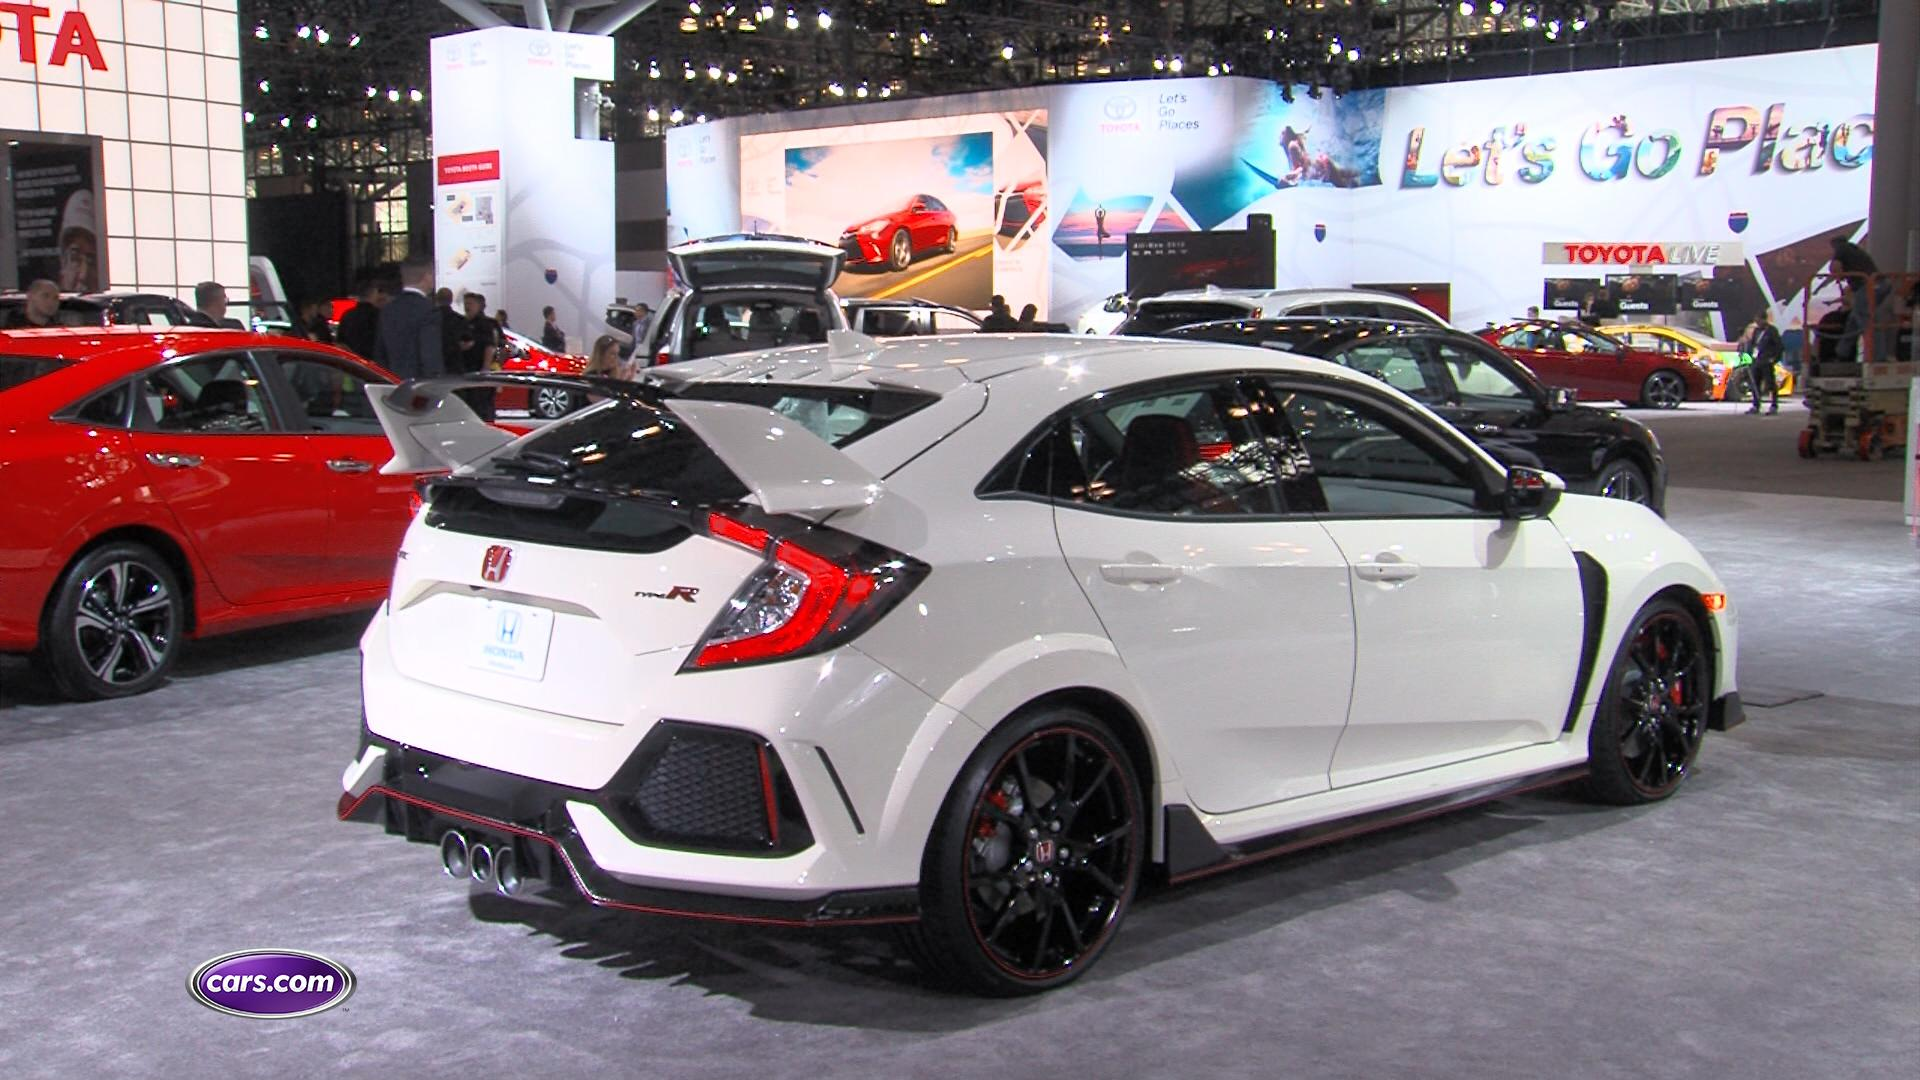 2017 honda civic type r review first impressions video. Black Bedroom Furniture Sets. Home Design Ideas